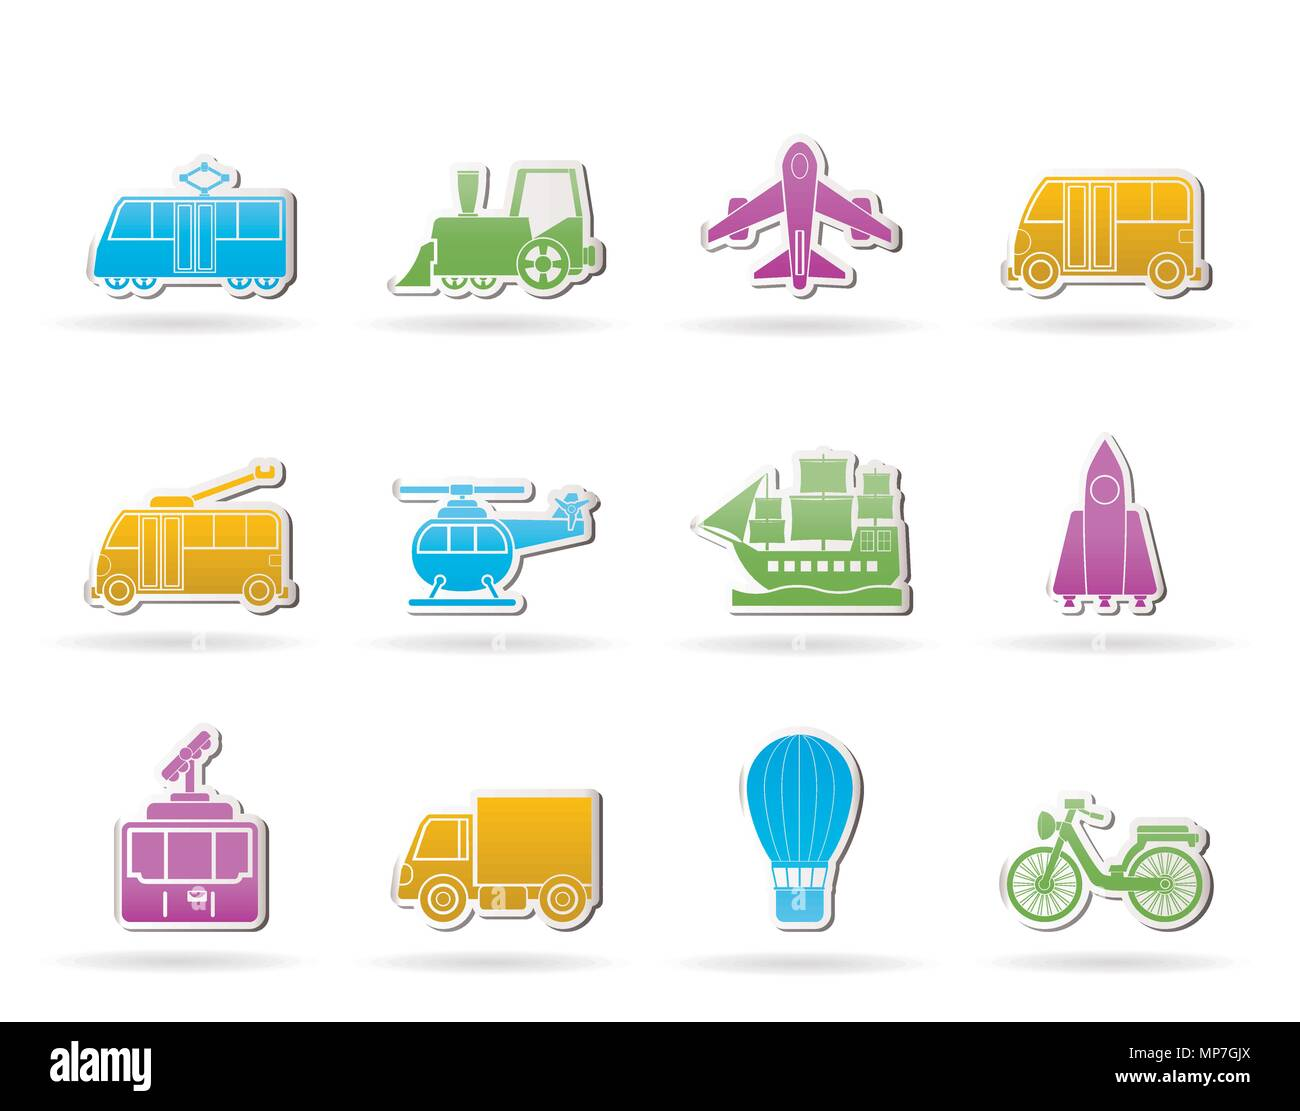 Travel and transportation icons - vector icon set - Stock Image